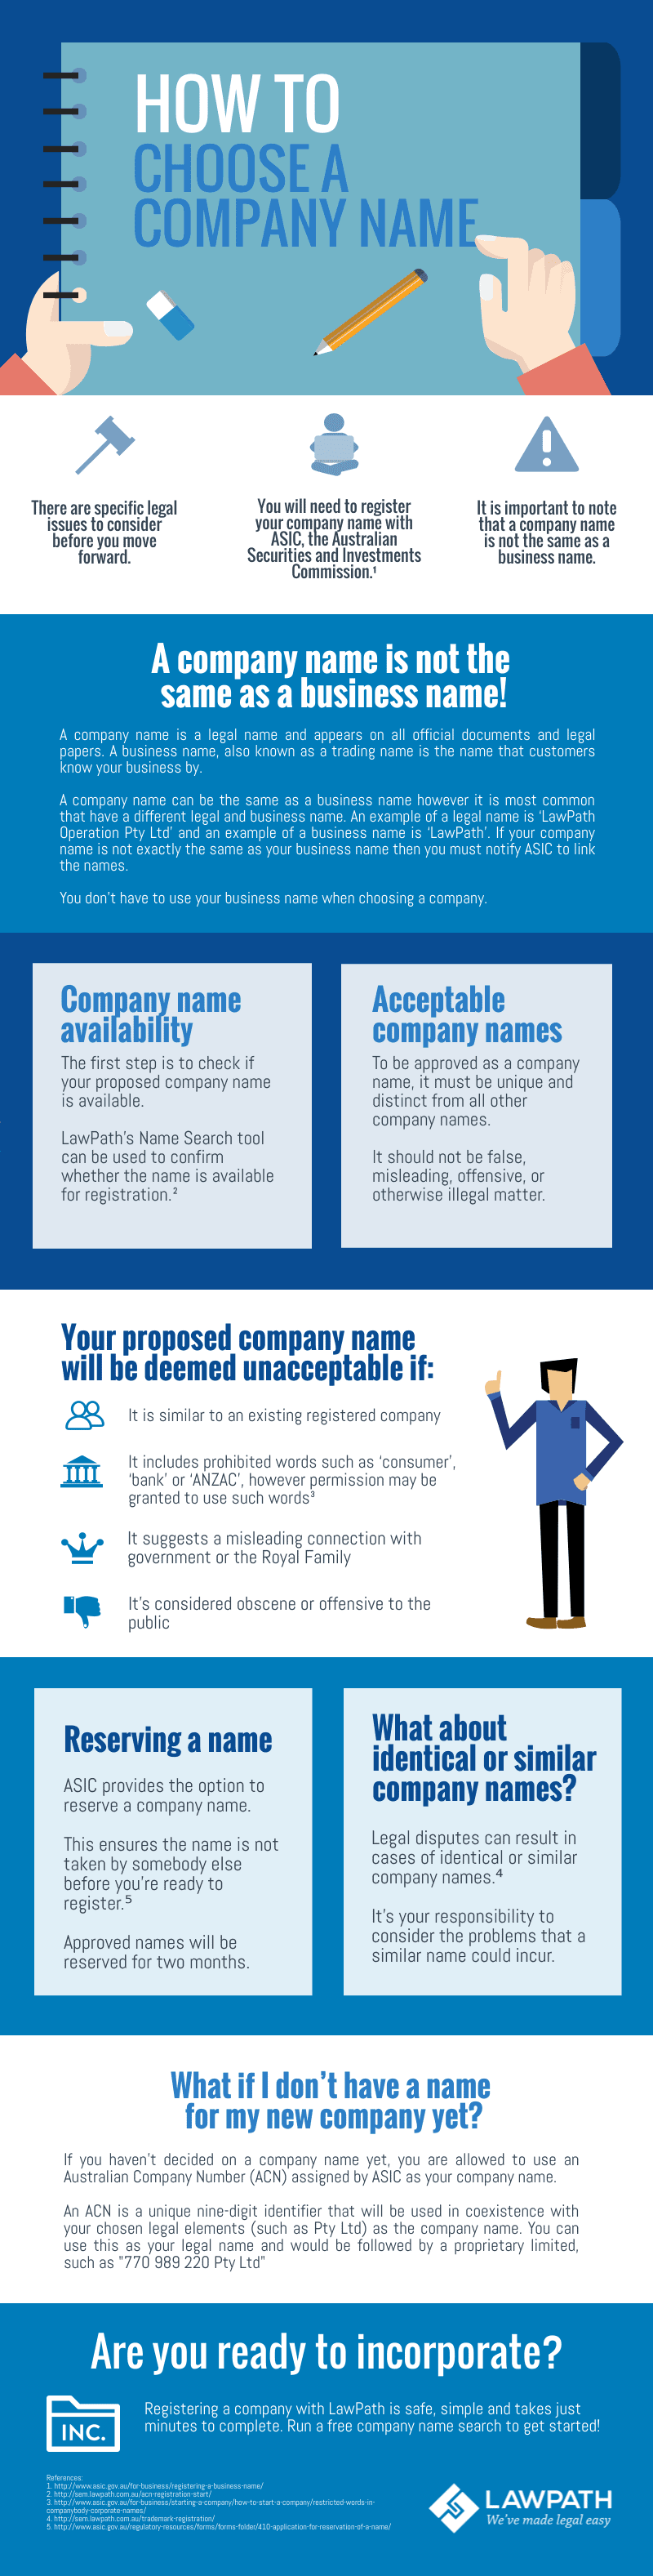 choose company name infographic